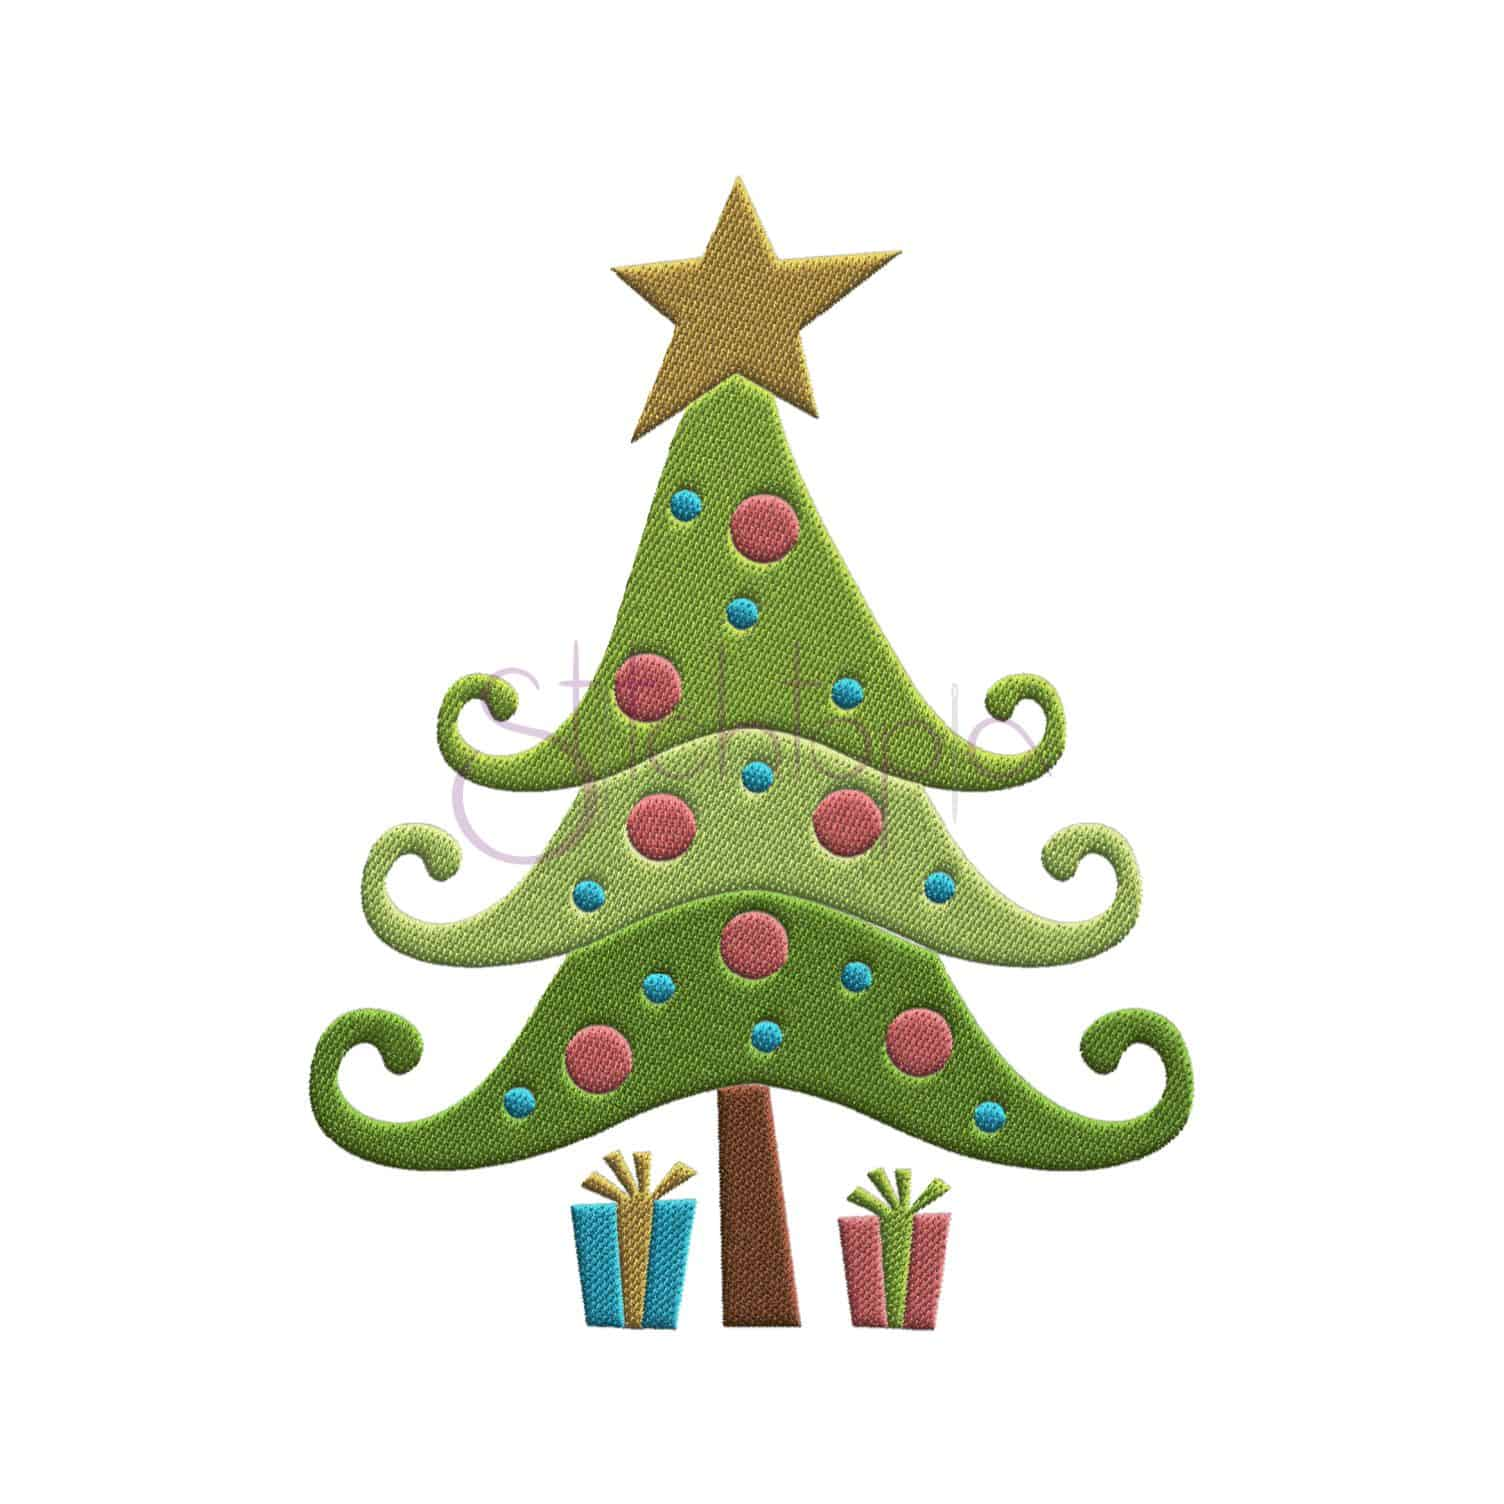 Christmas Tree Embroidery Design - Whimsical | Stitchtopia